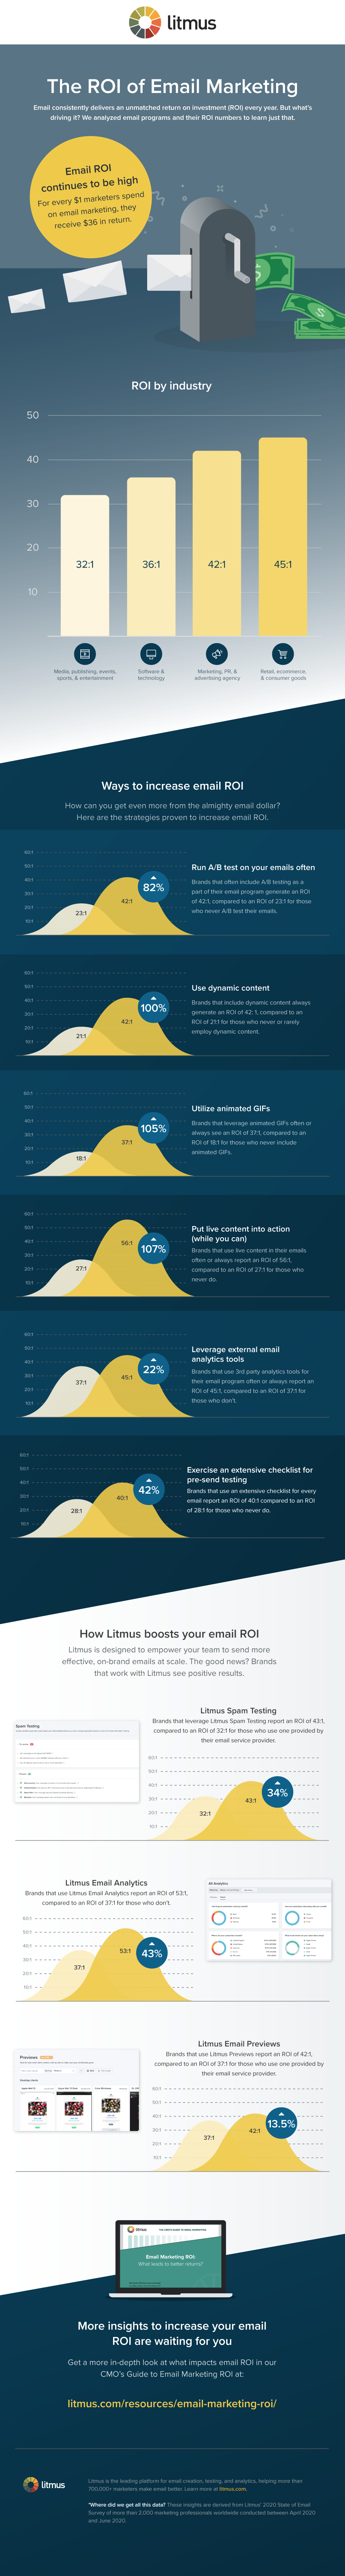 Email ROI - 2021